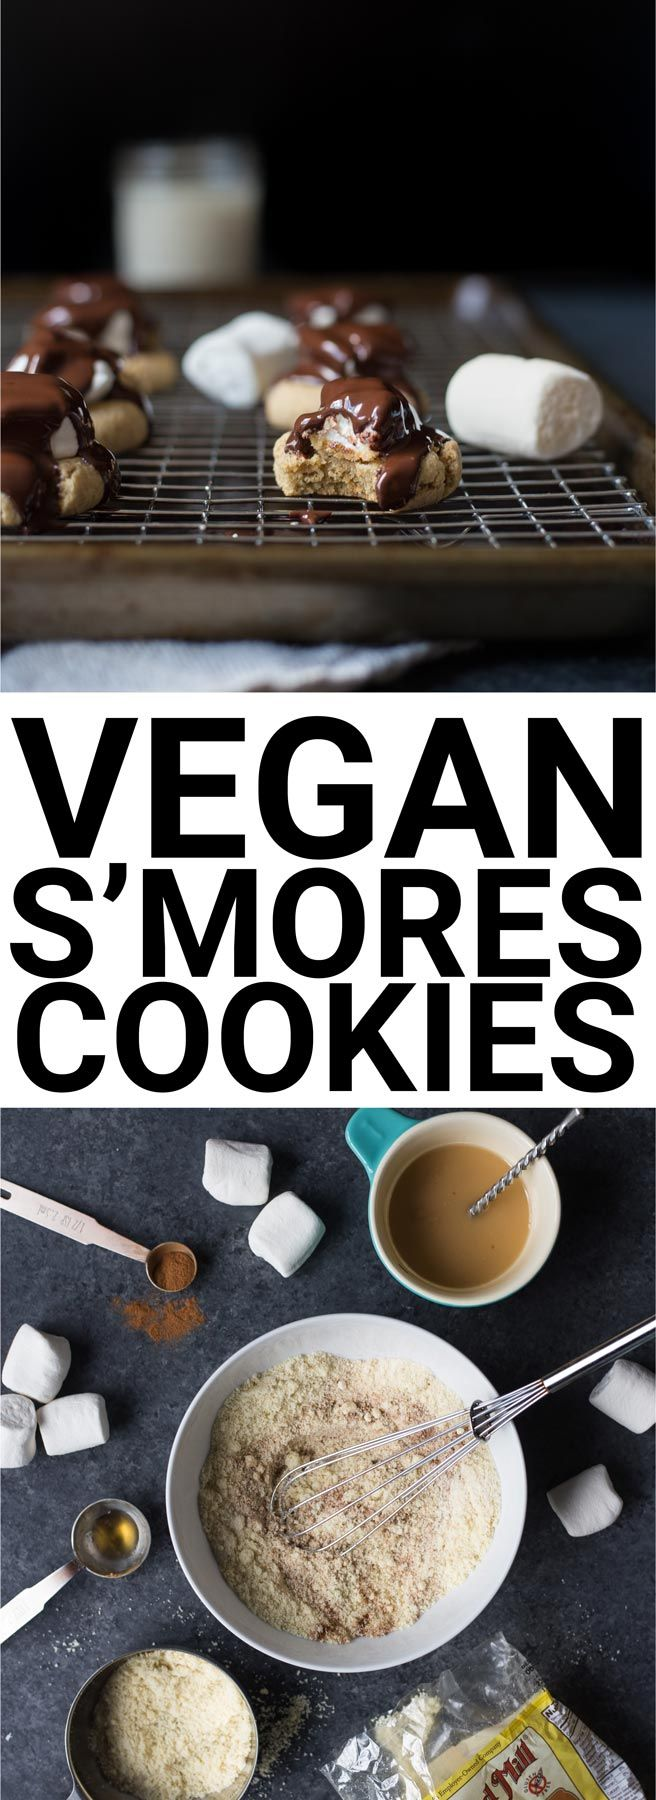 Vegan S'mores Cookies: Summer's favorite treat...in cookie form! The perfect vegan and gluten free dessert with no campfire in sight.    fooduzzi.com recipe